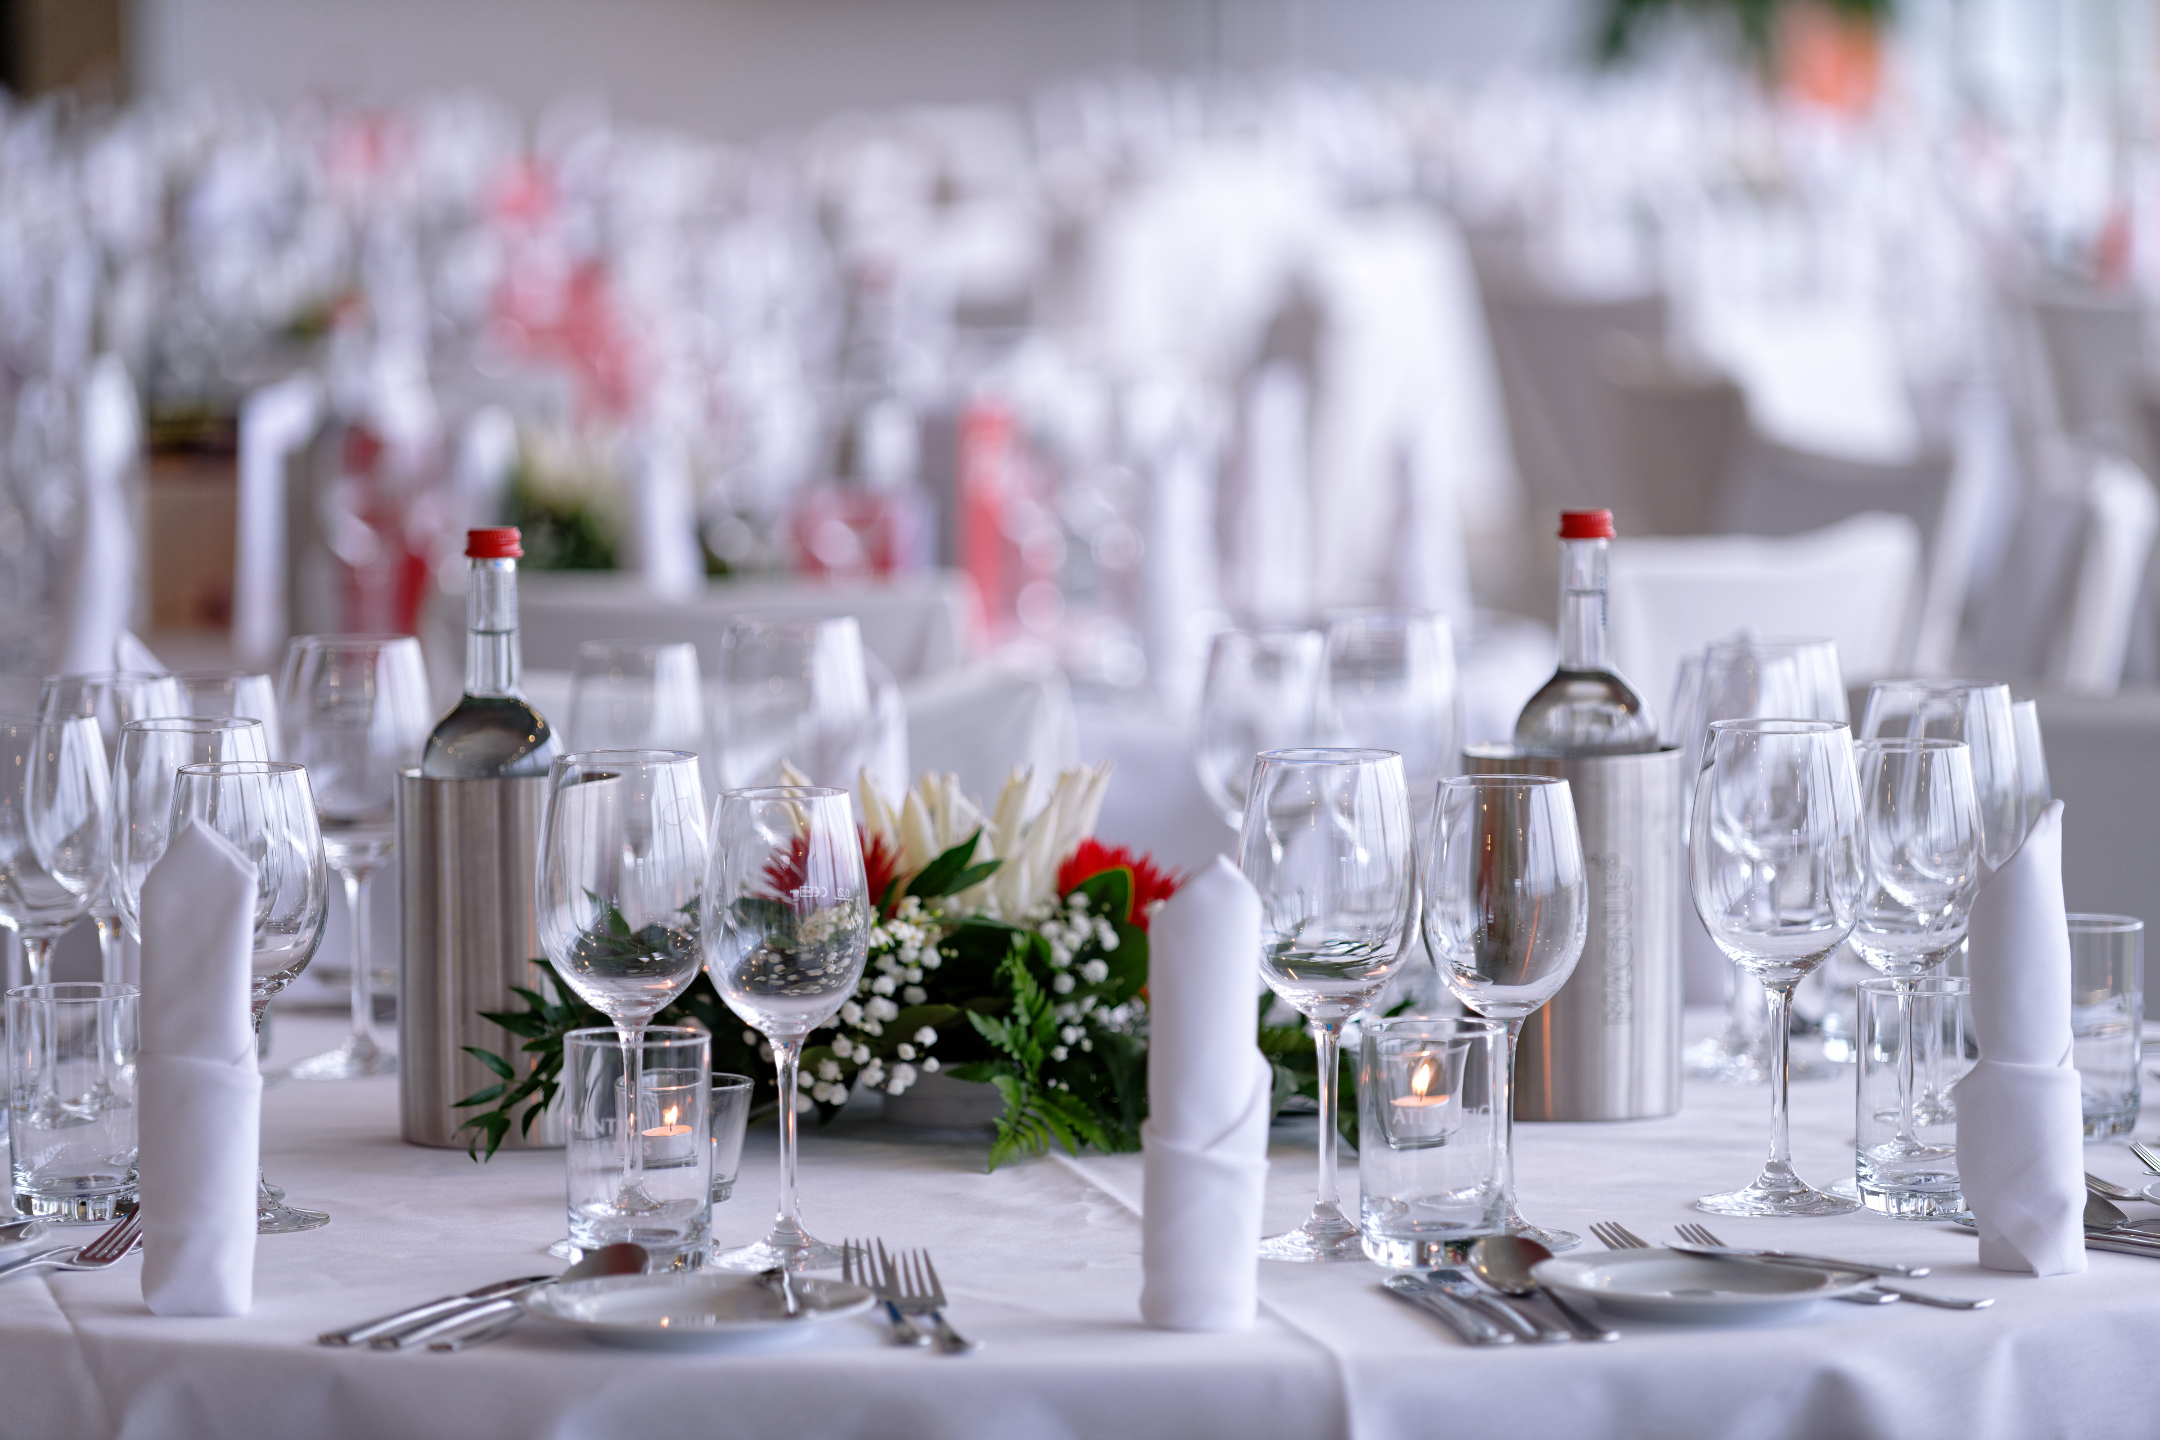 Festive table decoration | ATLANTIC Hotel Galopprennbahn Bremen